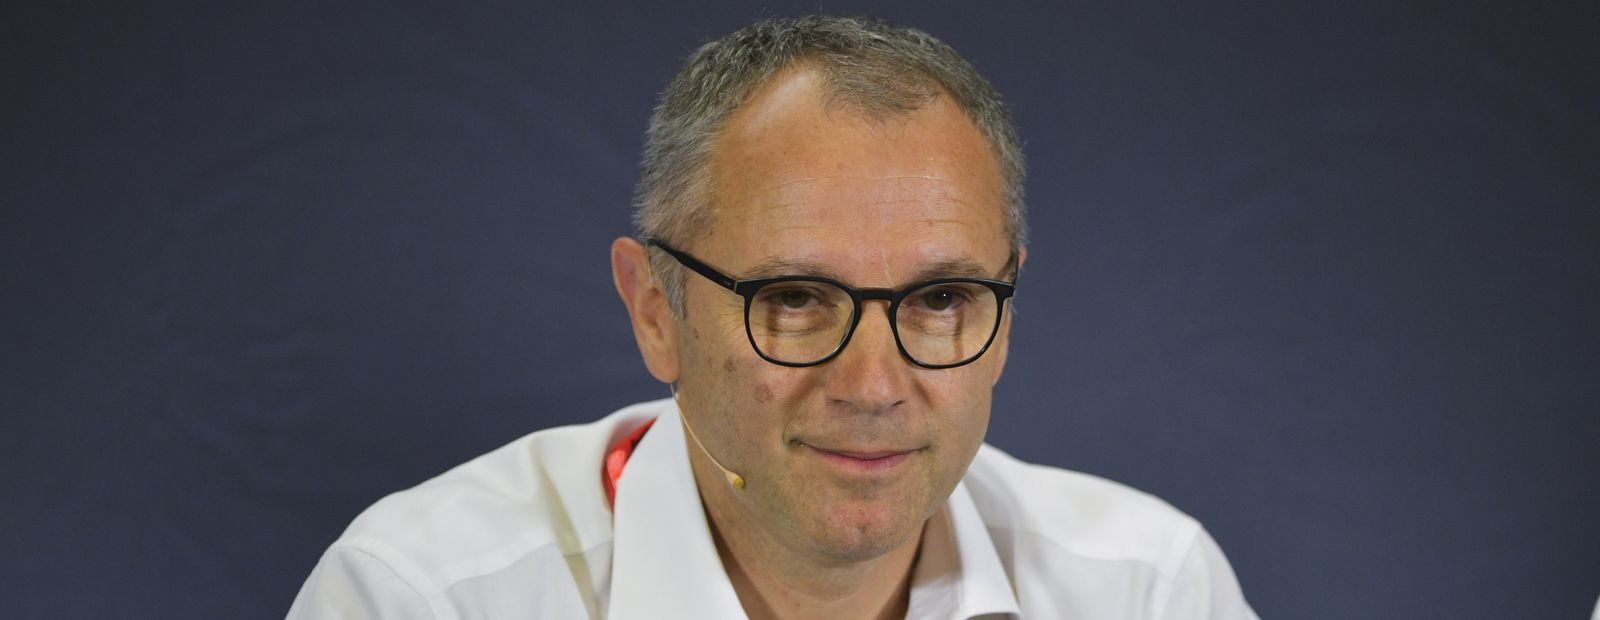 Statement from McLaren Racing on the announcement of Stefano Domenicali as President & CEO of F1